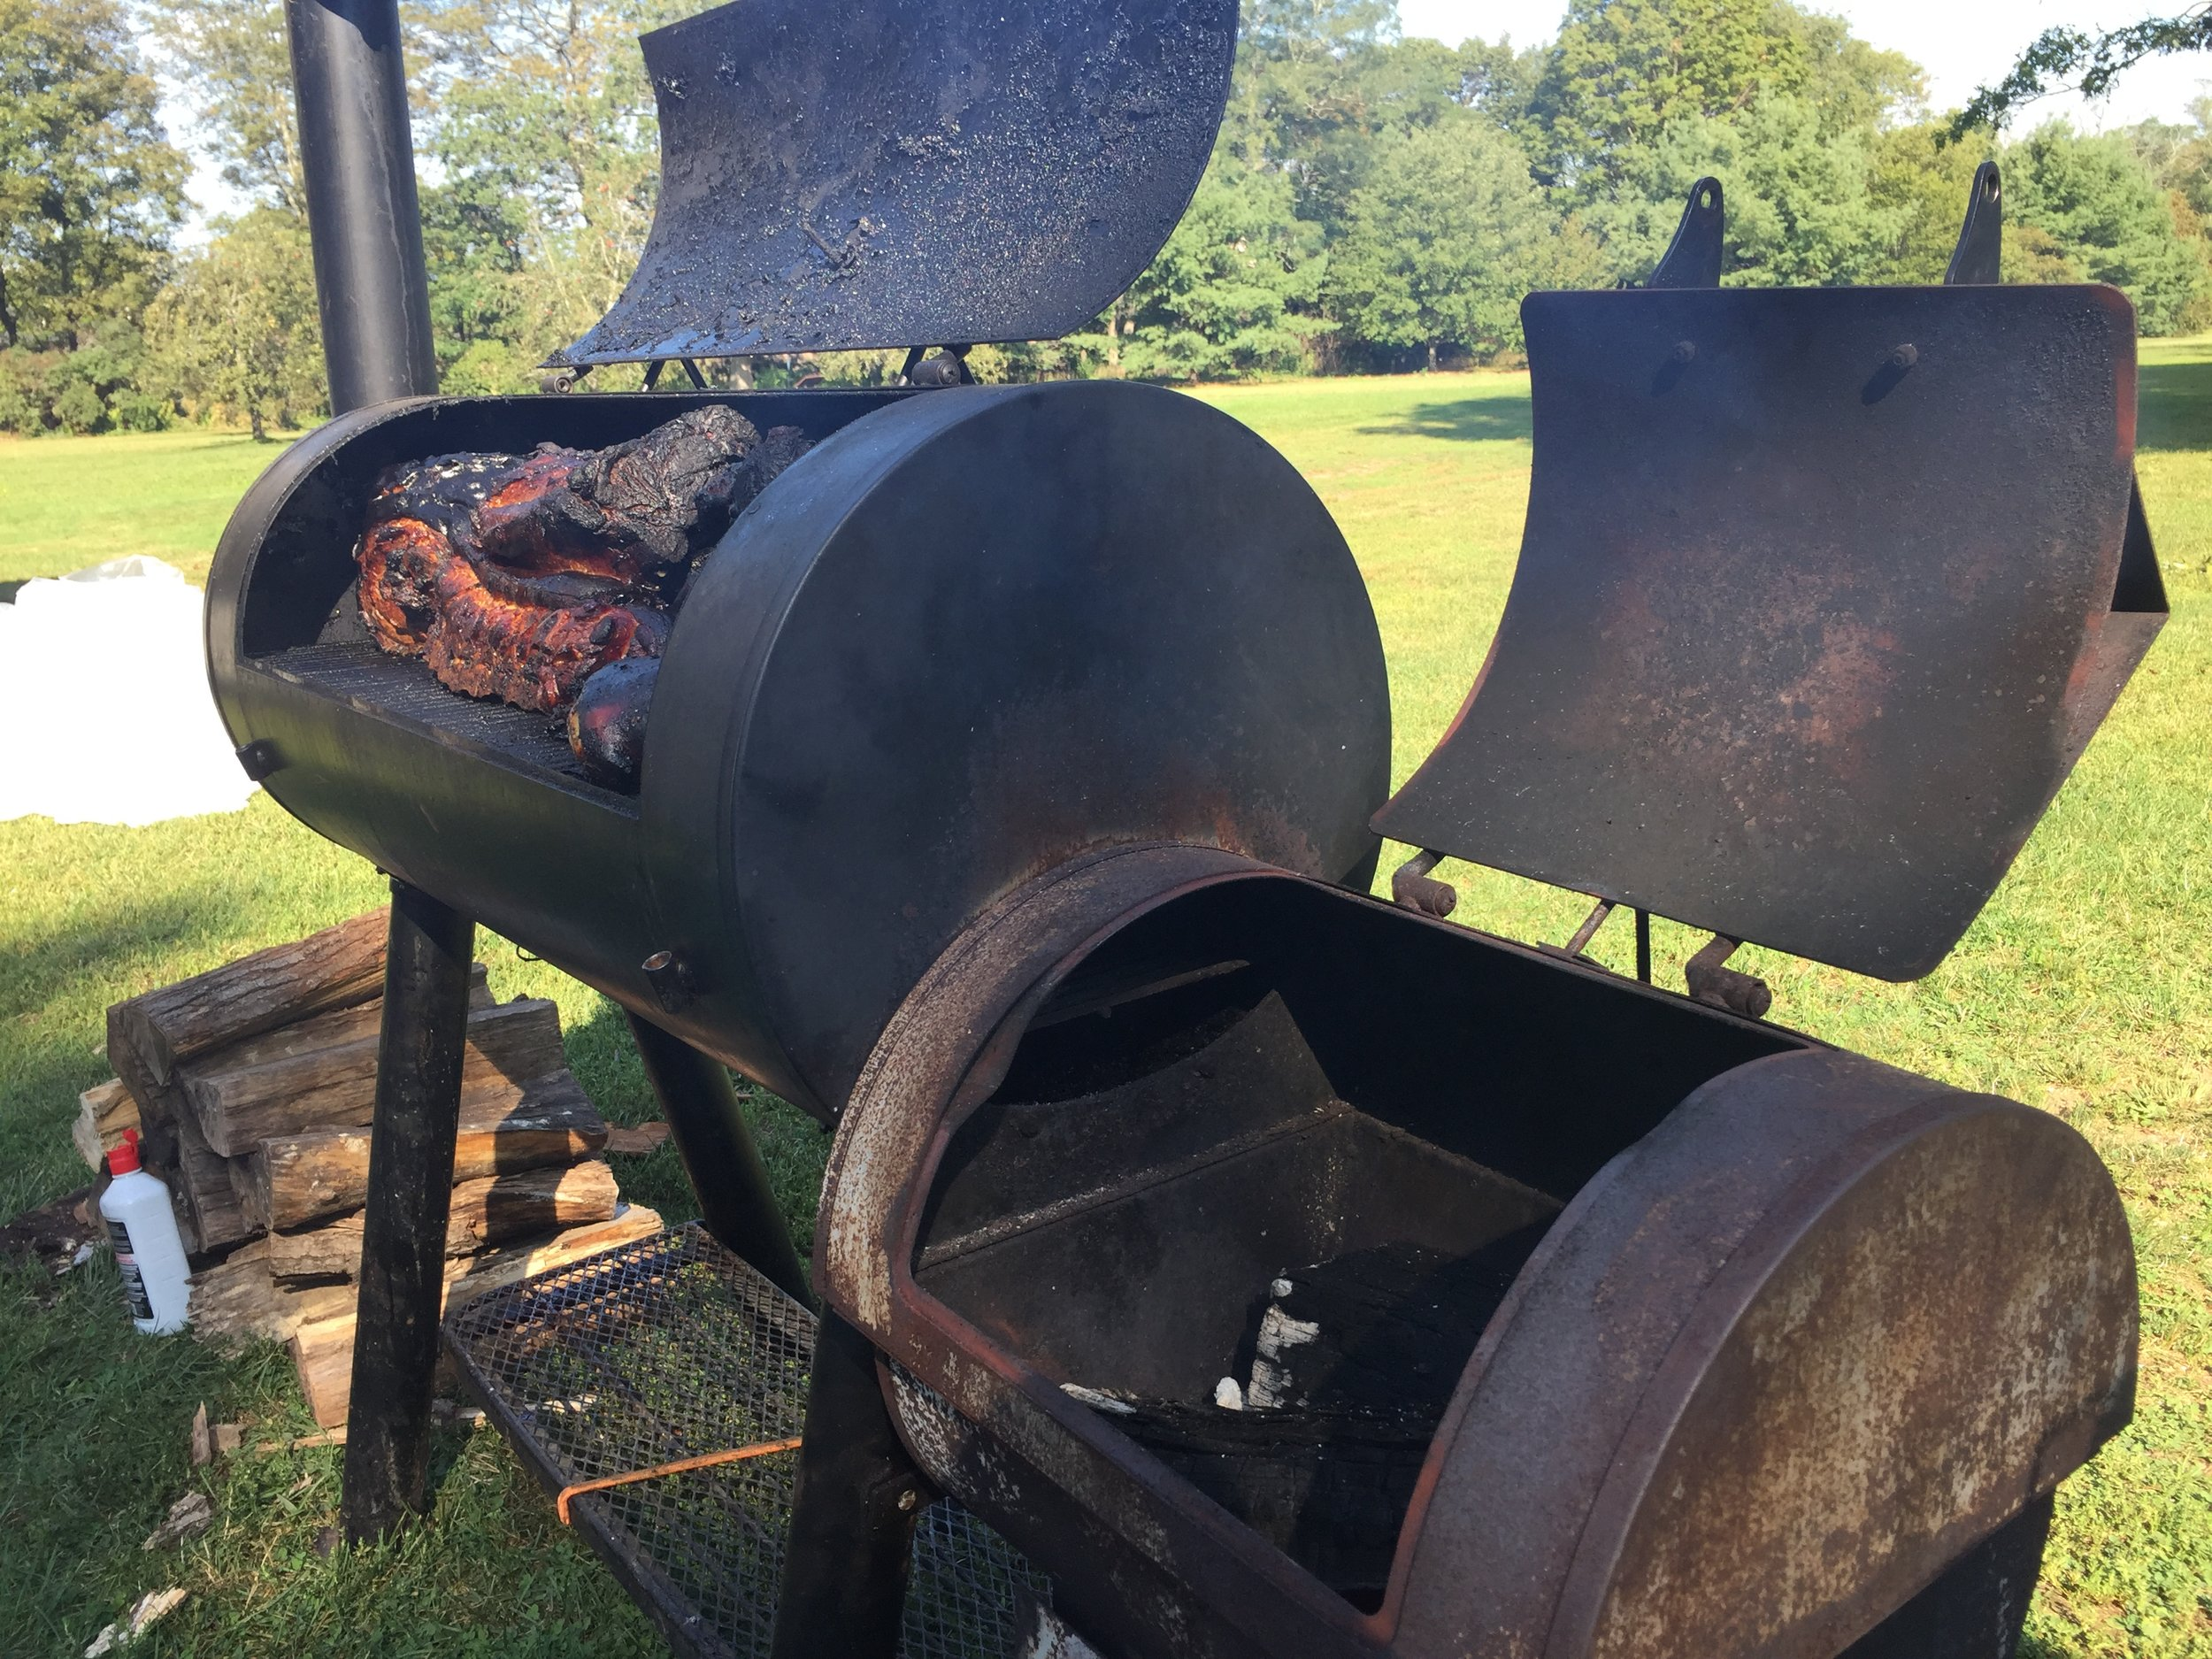 LECHON PIG ROAST - Our local organic pig roast!Served With: Mexican Street CornRoasted Sweet PotatoSpanish RiceSmoked SalsaTortillas$29 Per Person